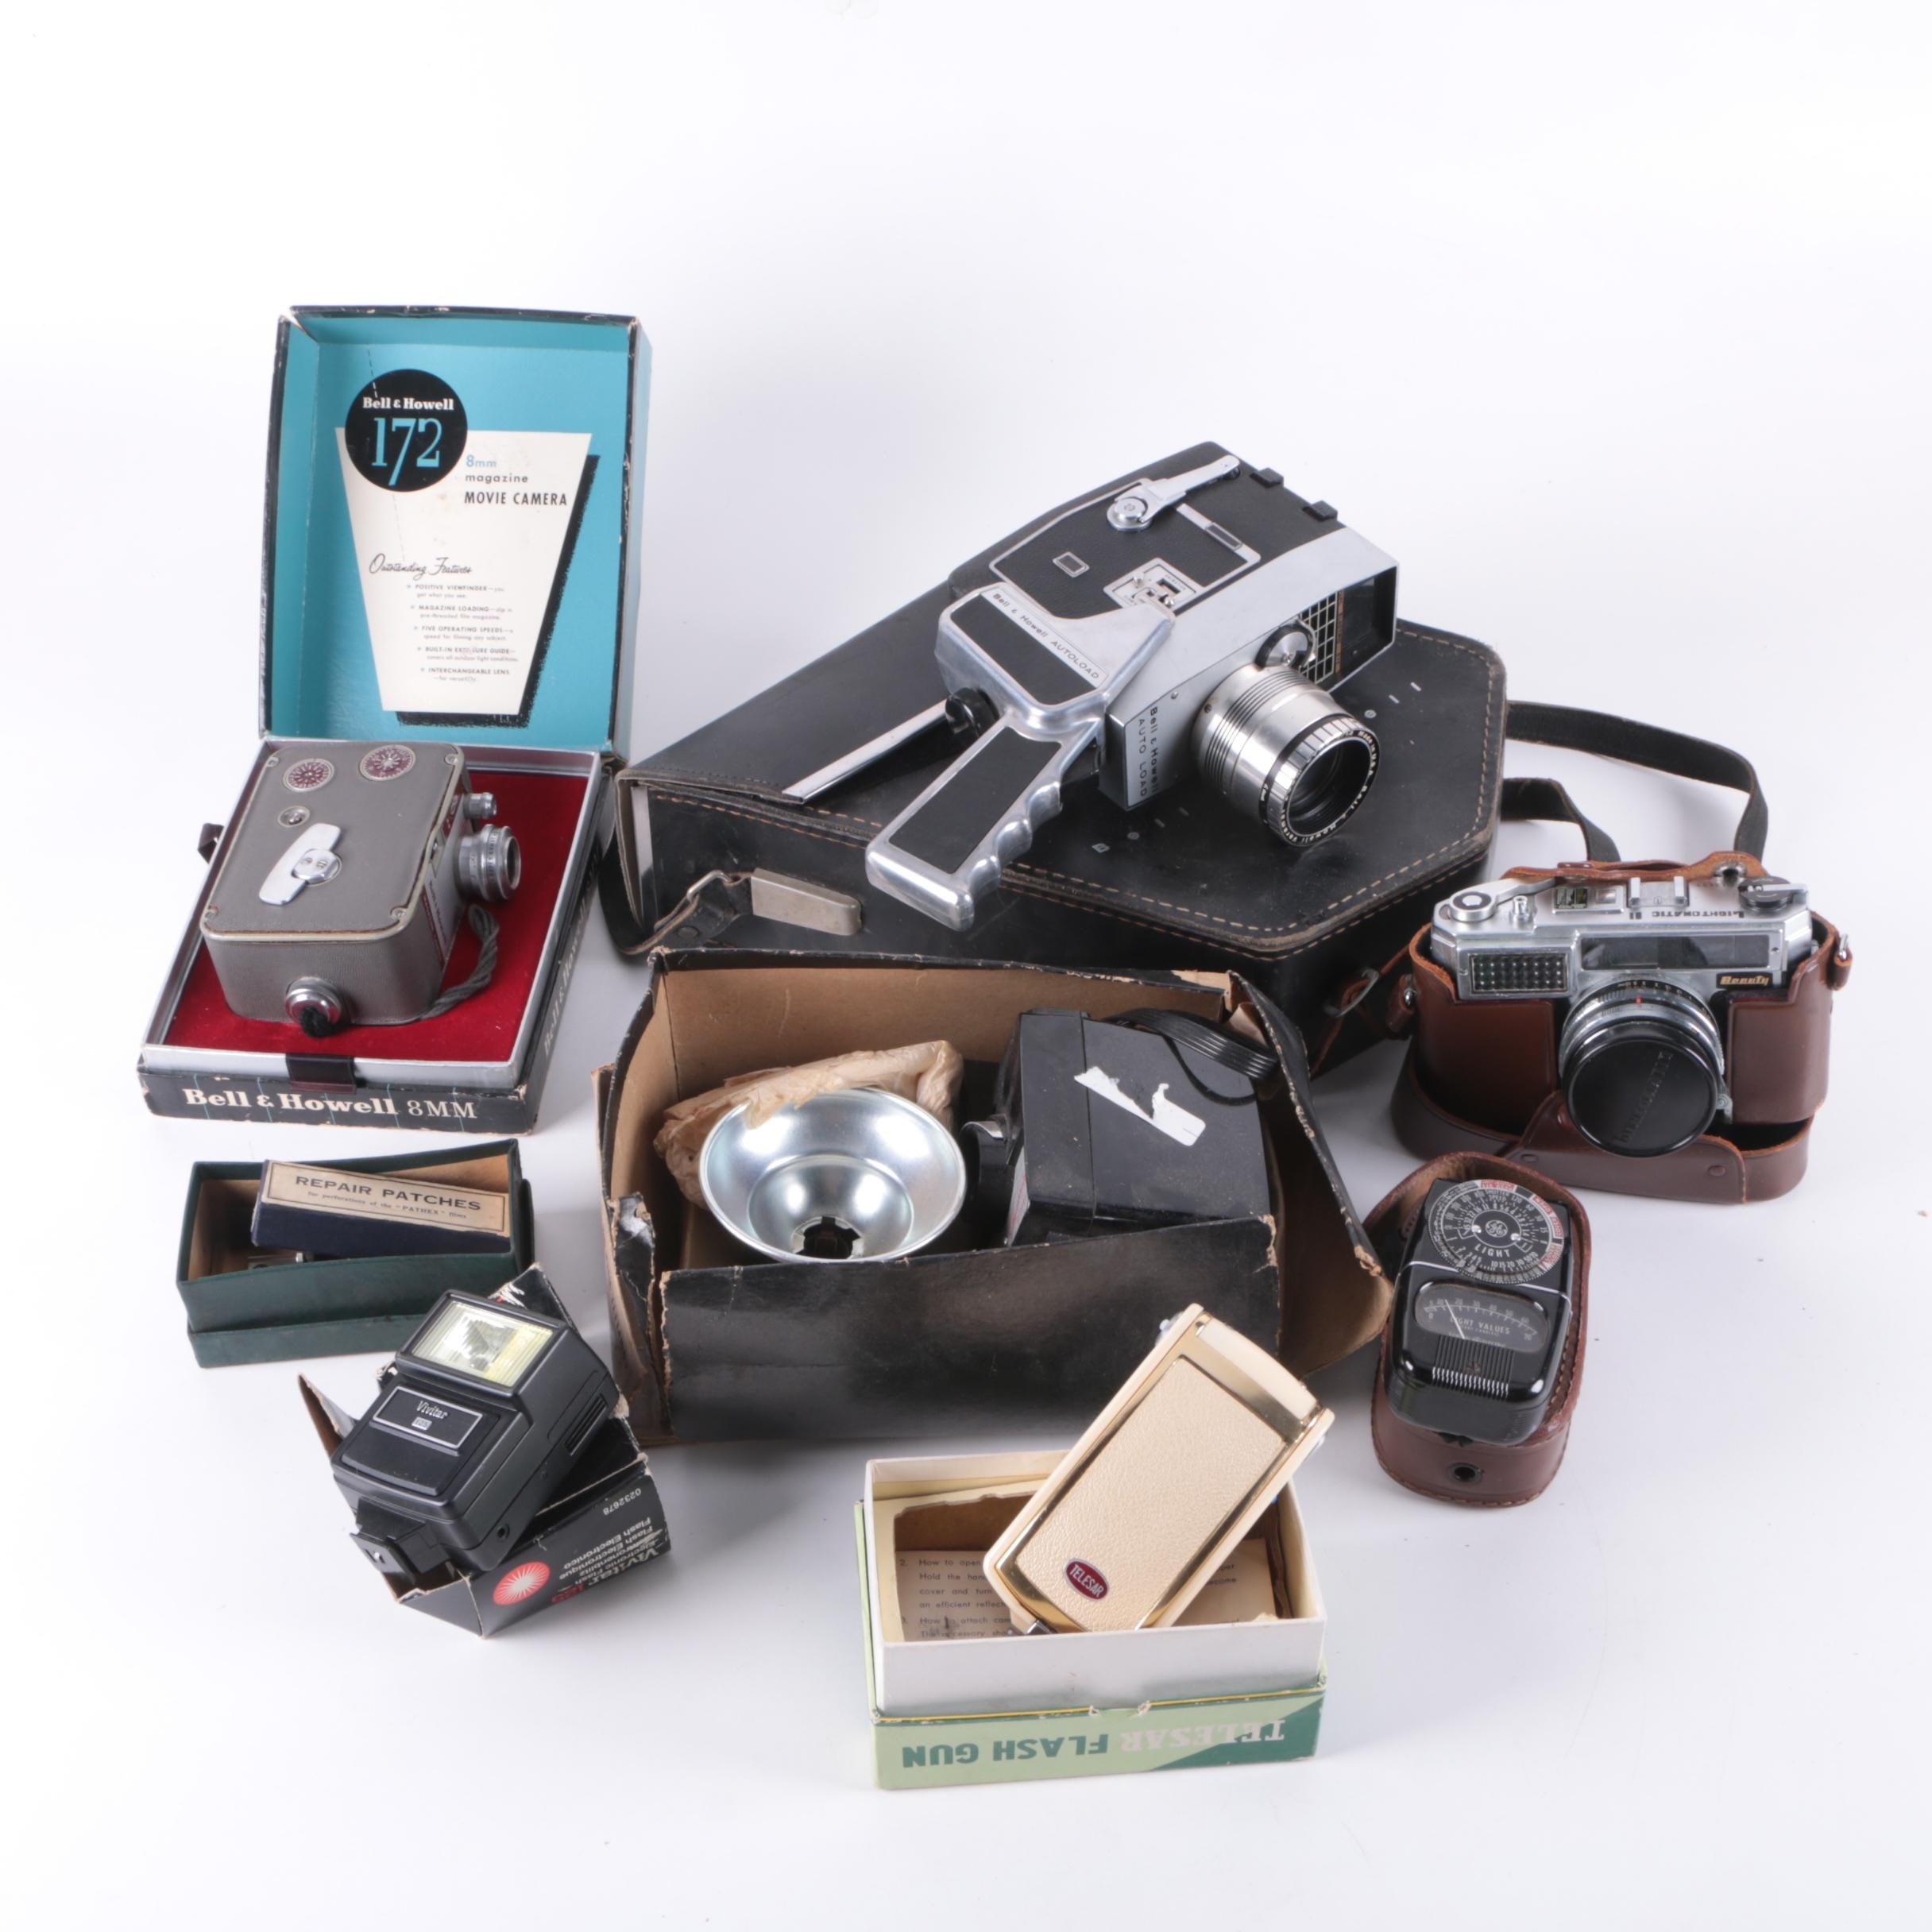 Vintage Cameras and Accessories Featuring Bell & Howell